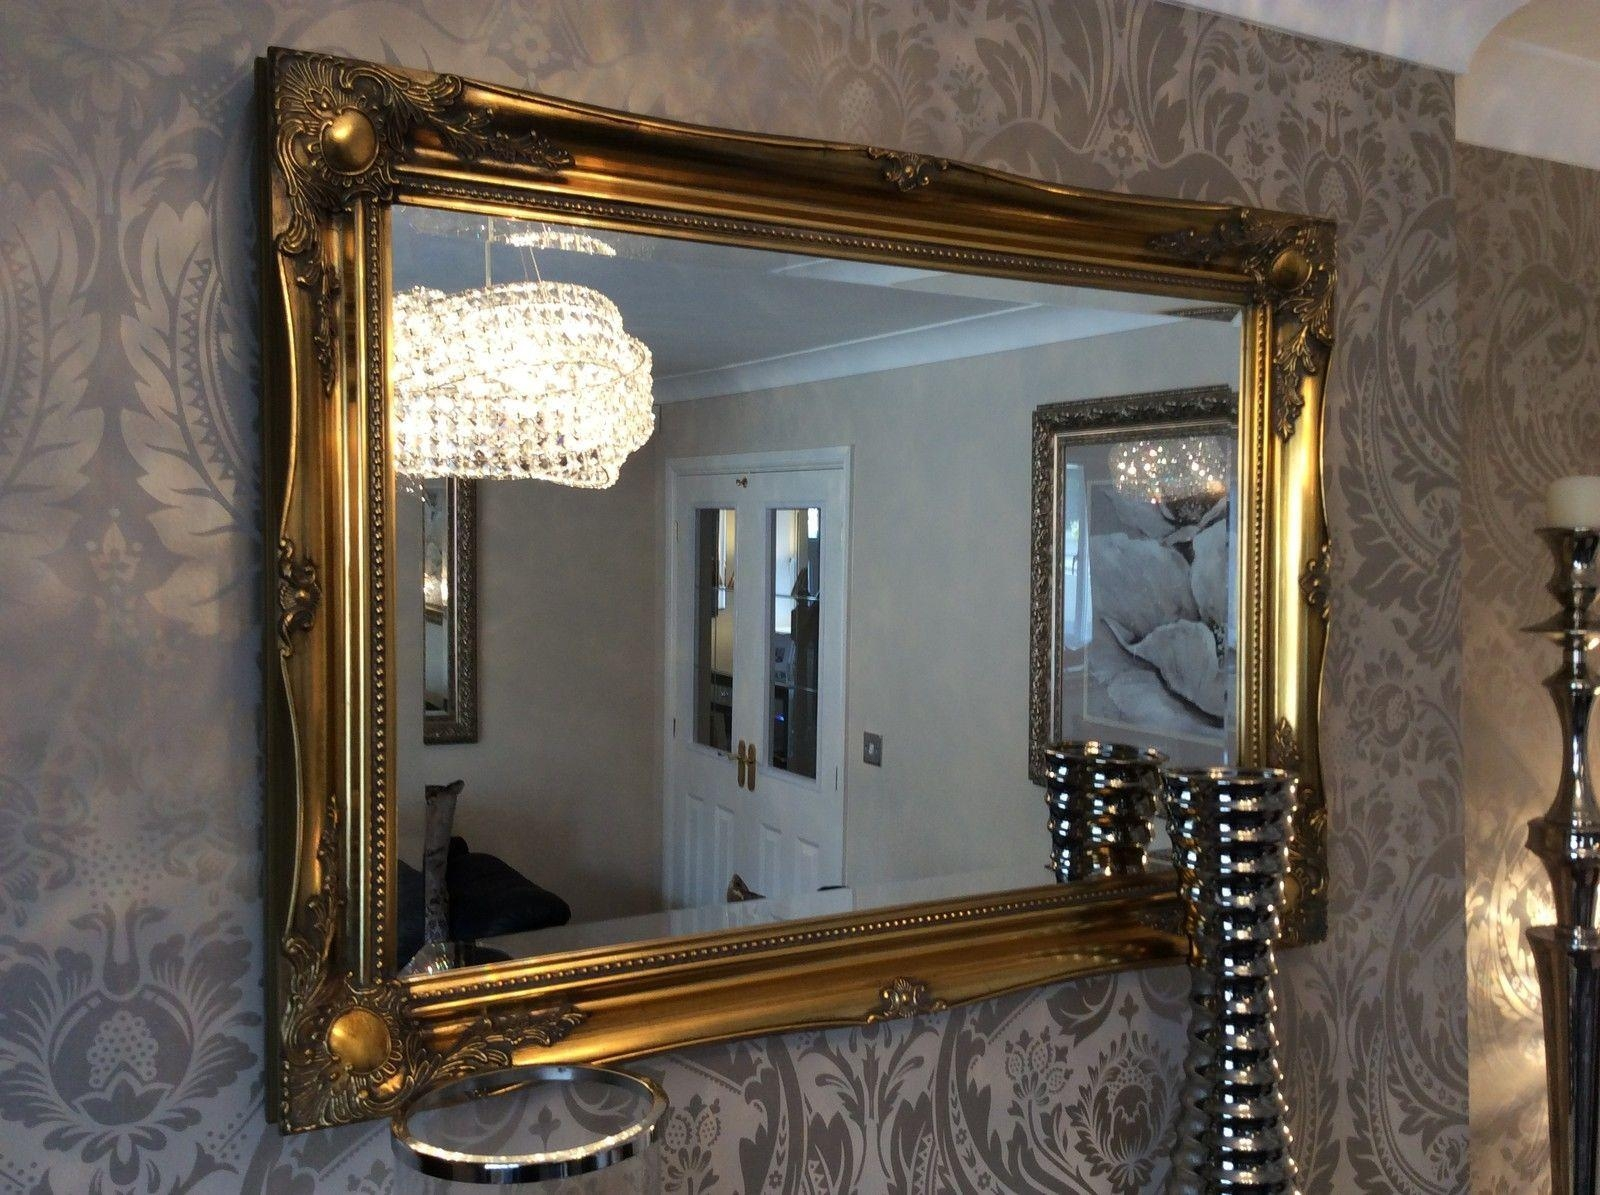 Antique Mirror Wall Sconce Antique Wall Shelf Mirror – Classic In Gold Ornate Mirrors (View 11 of 20)